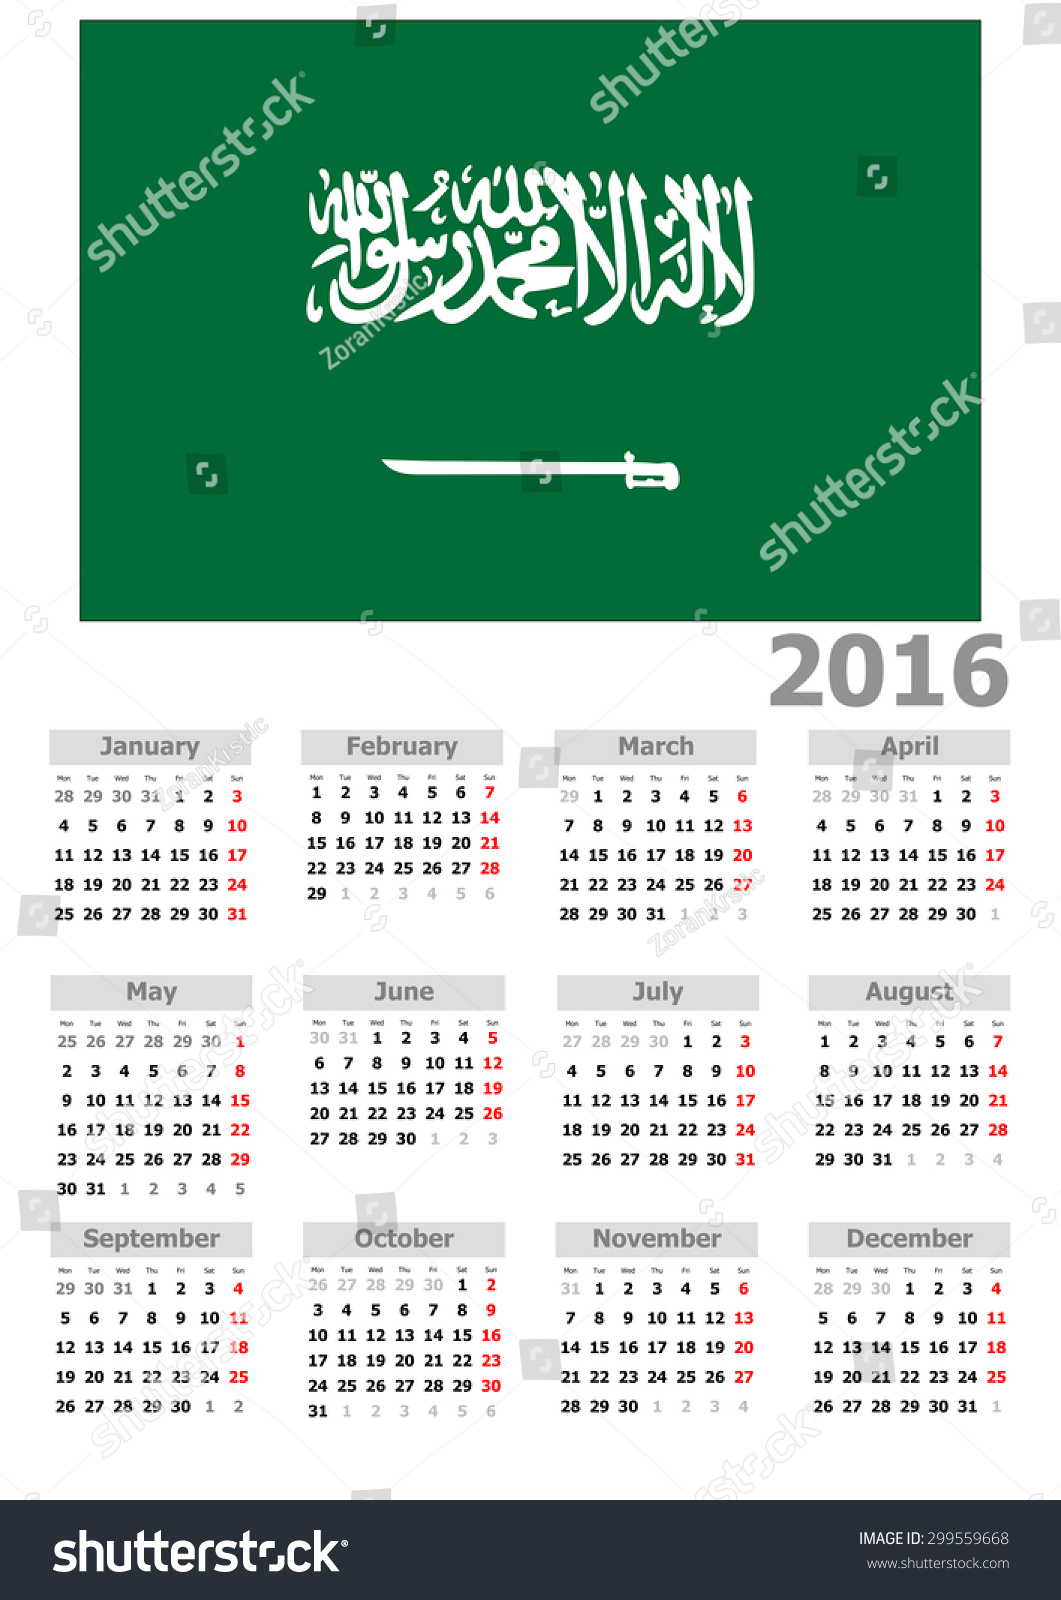 Calendar Ksa : Calendar saudi arabia country flag stock photo